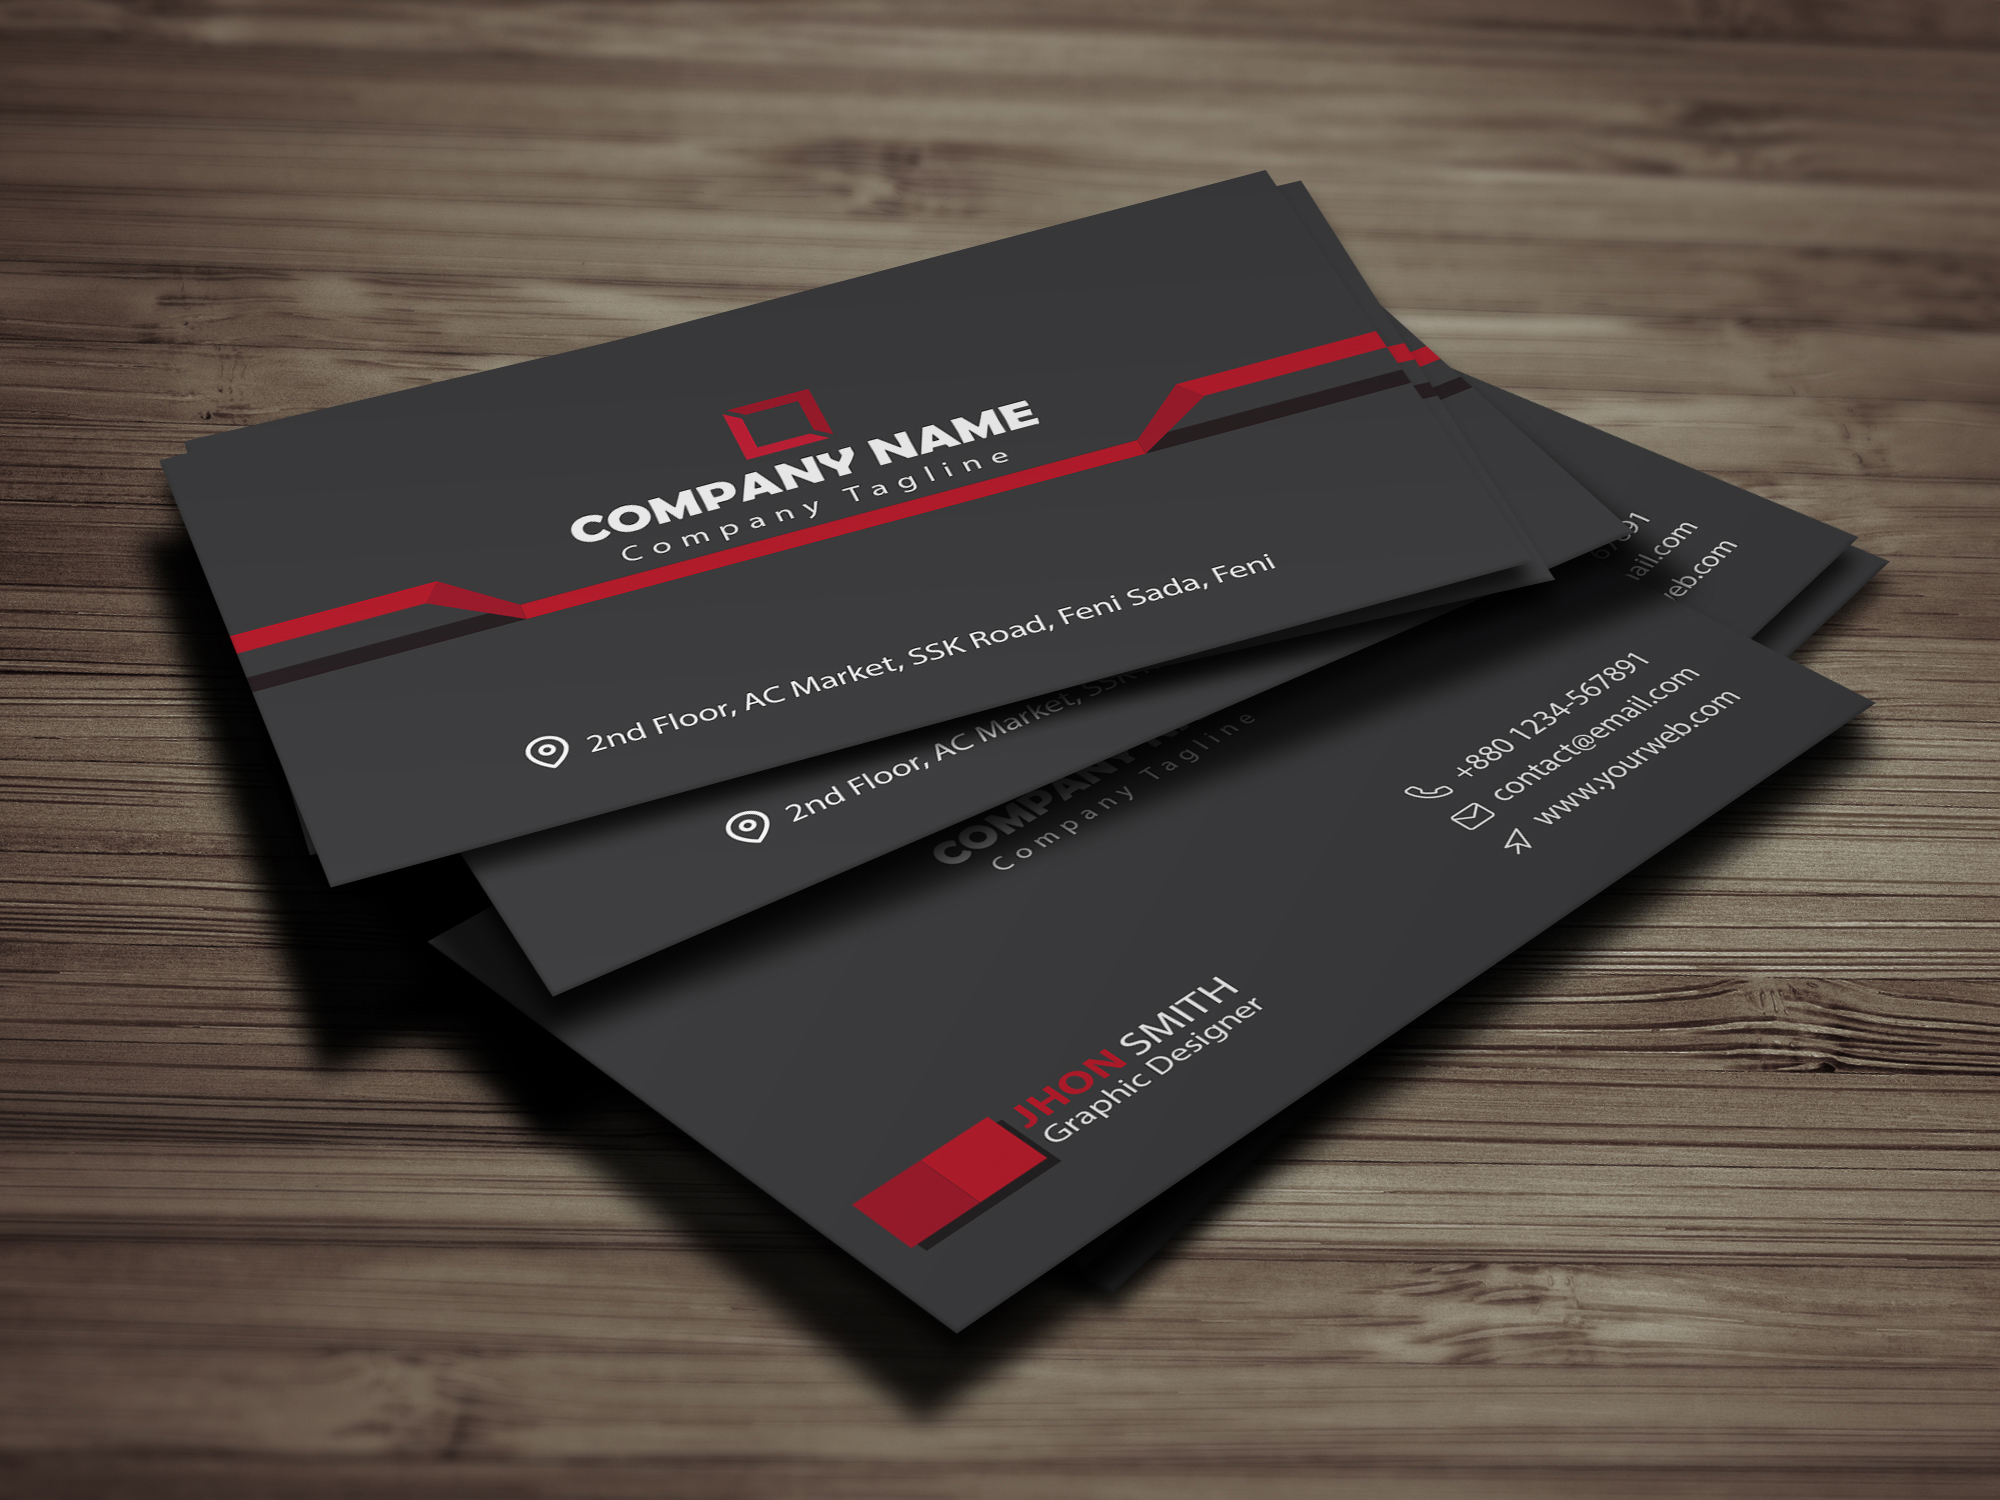 I will design minimal luxury business card, and unique modern business card design